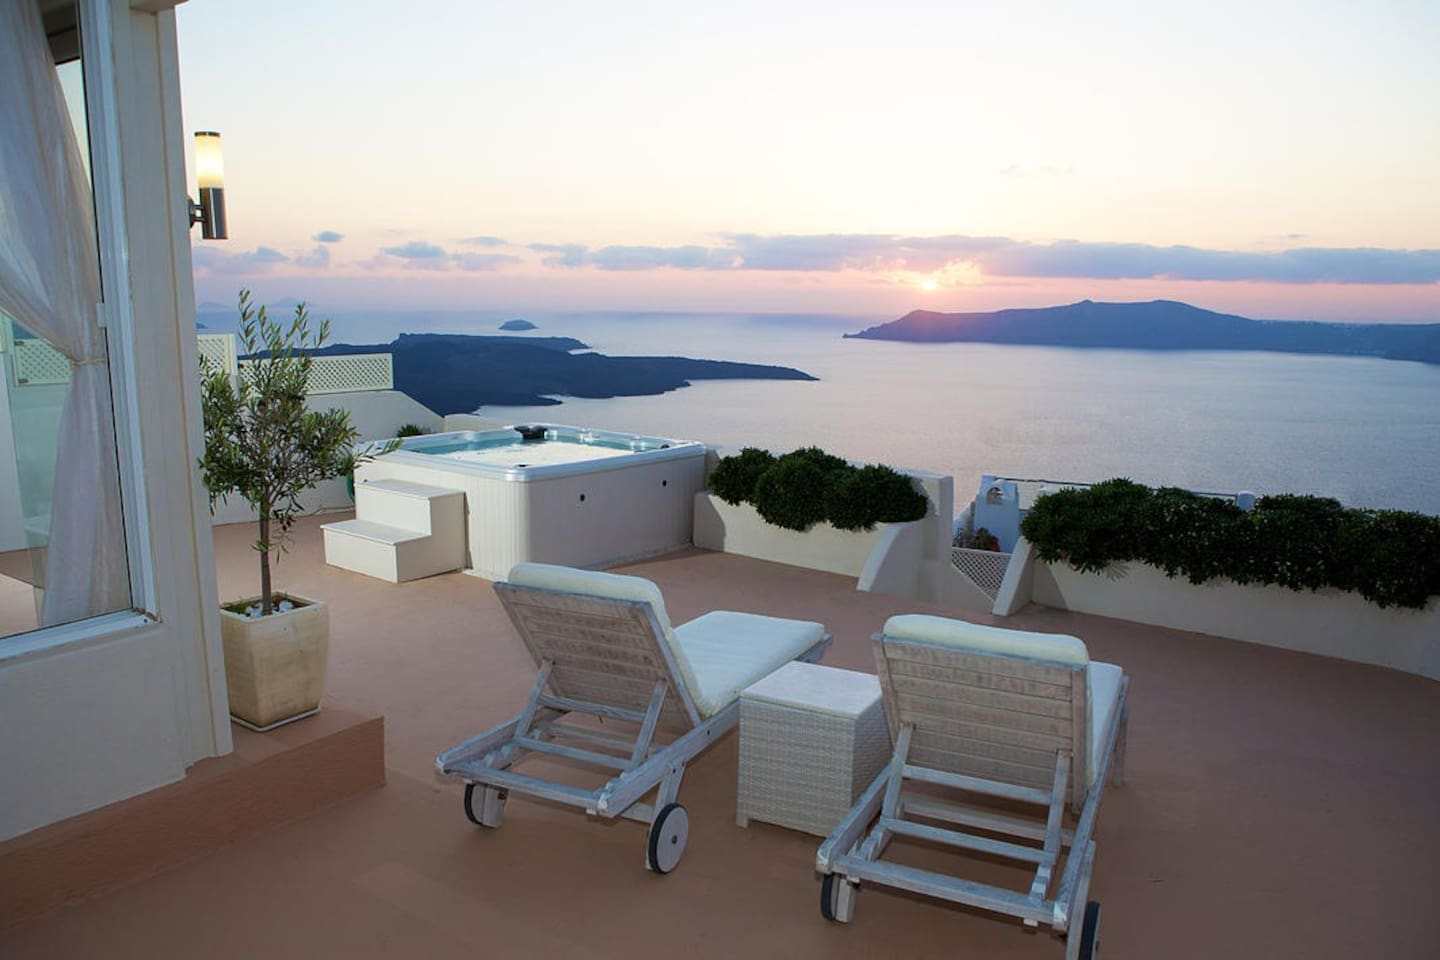 The terrace includes a bar & kitchen, perfect for preparing your favorite summer drinks.  The stylish outdoor lounge & 6 seater dining furniture create a fantastic place to watch the astonishing sunsets that make Santorini famous.